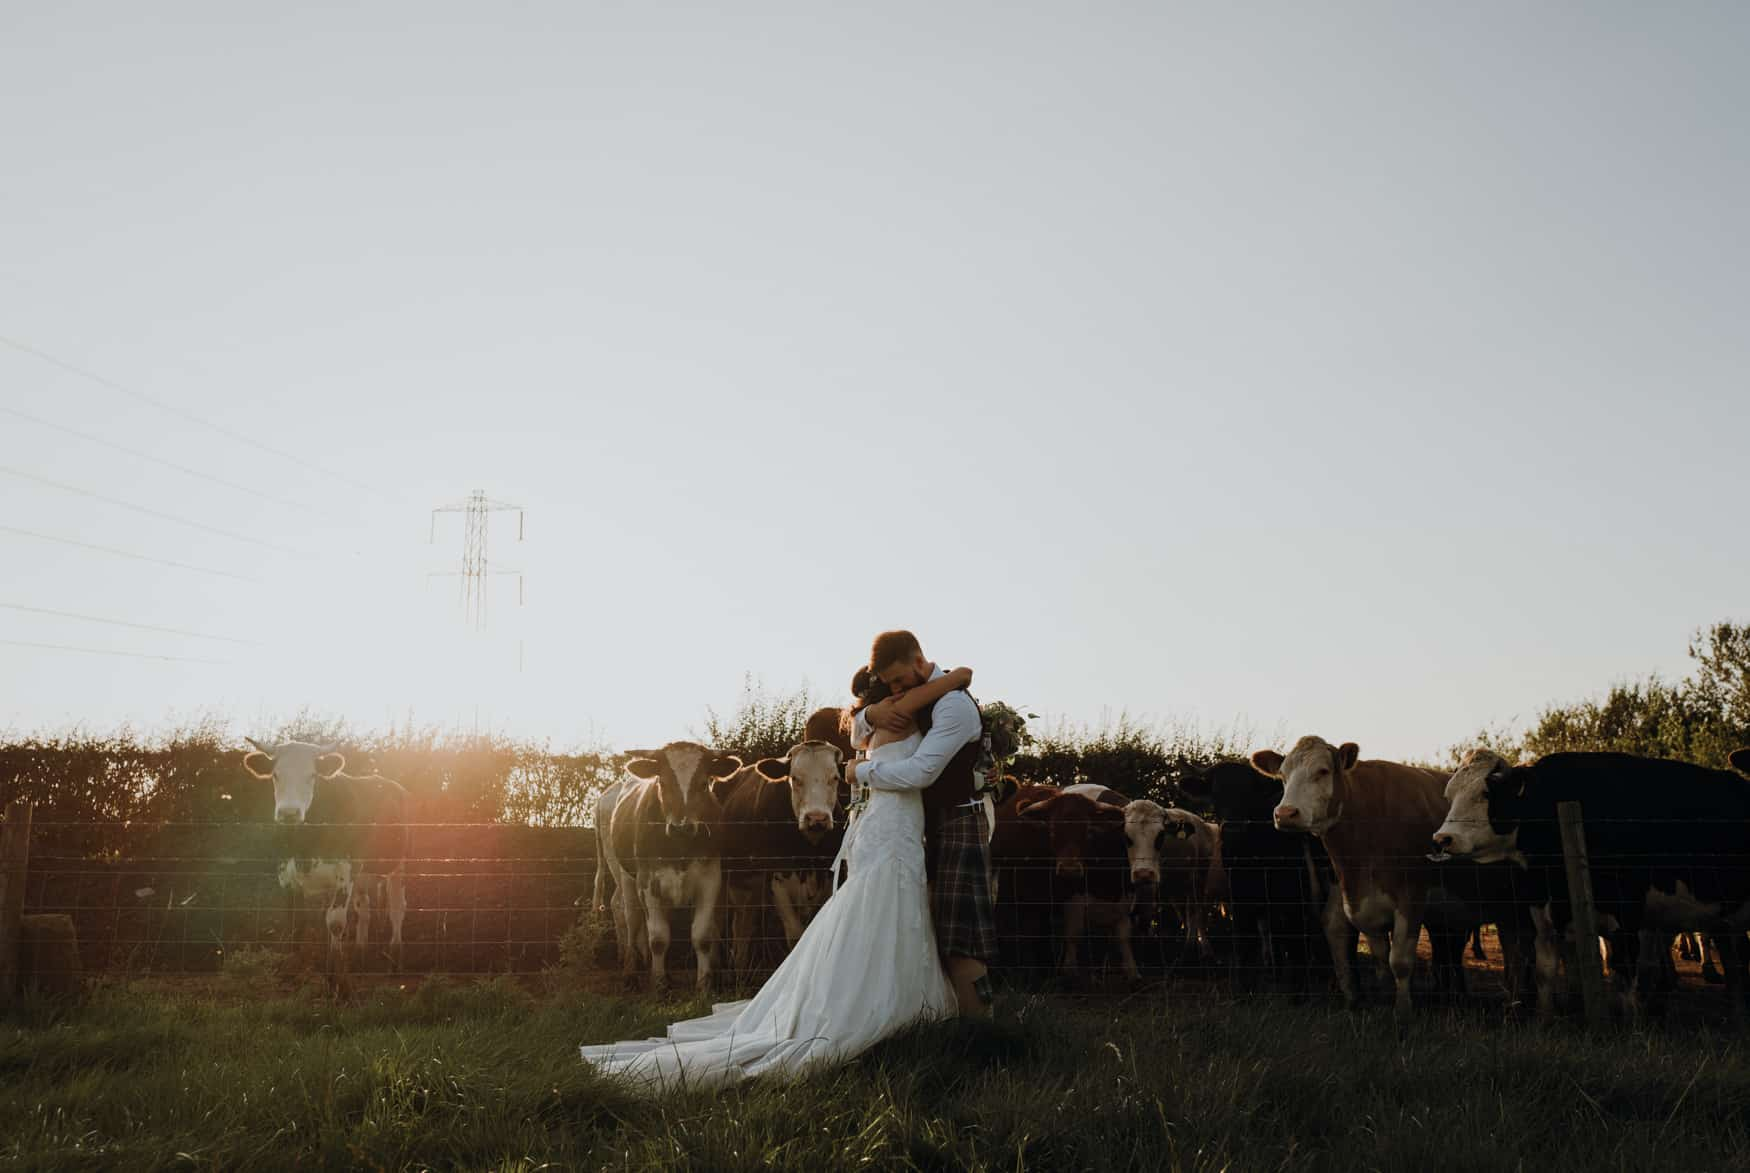 Bride and groom in a sunlit field